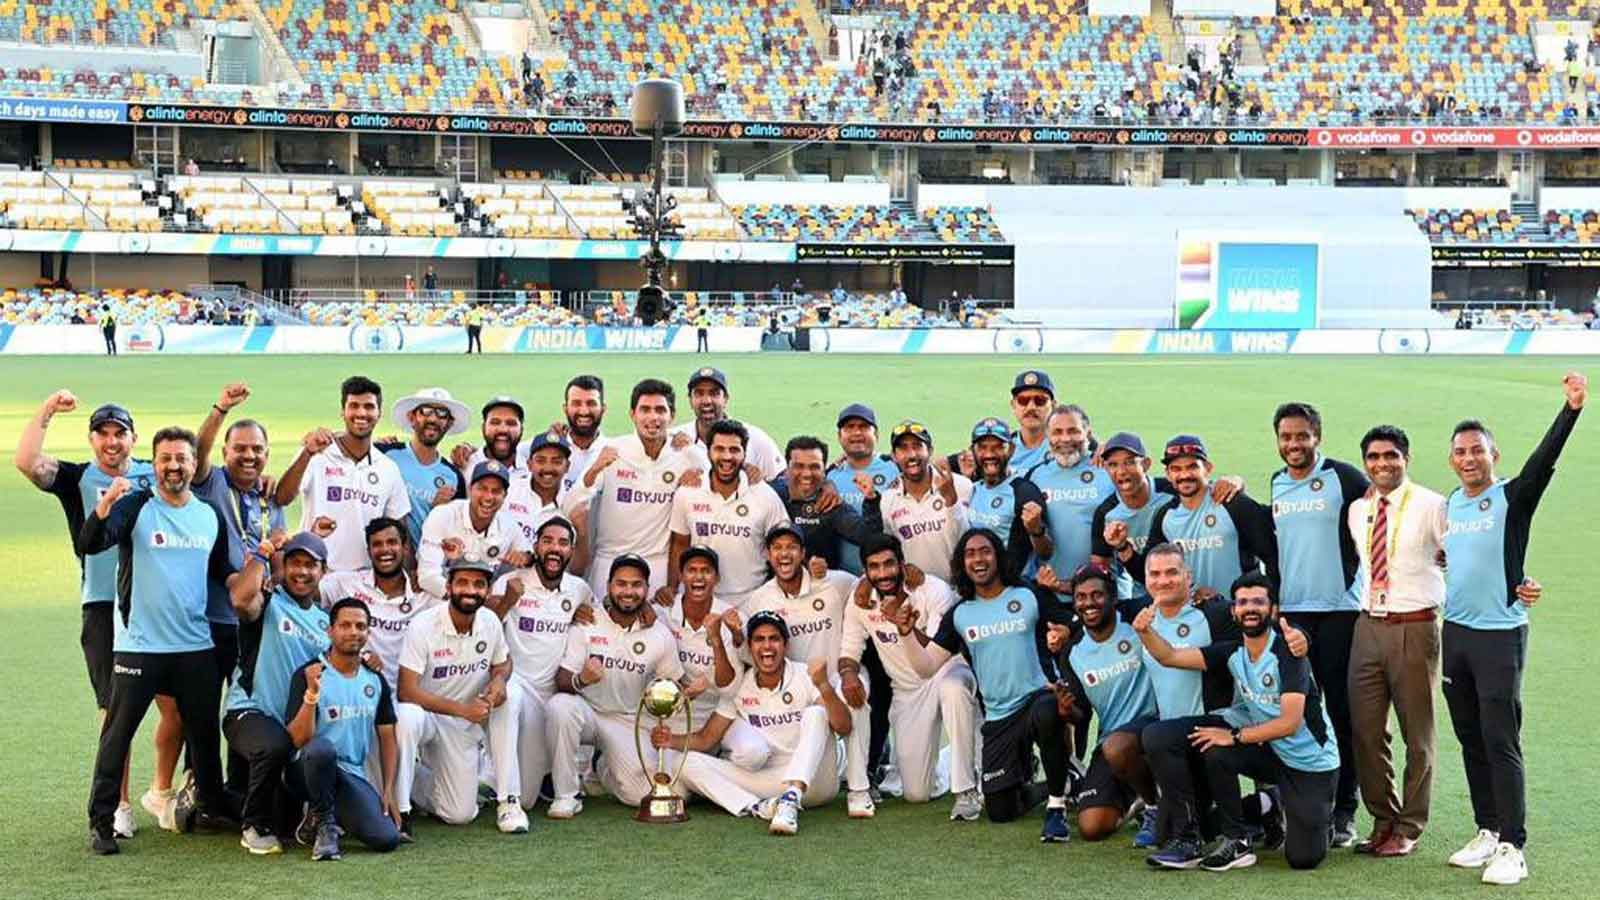 ind-vs-aus-team-india-rewrites-history-with-another-test-series-win-on-australian-soil